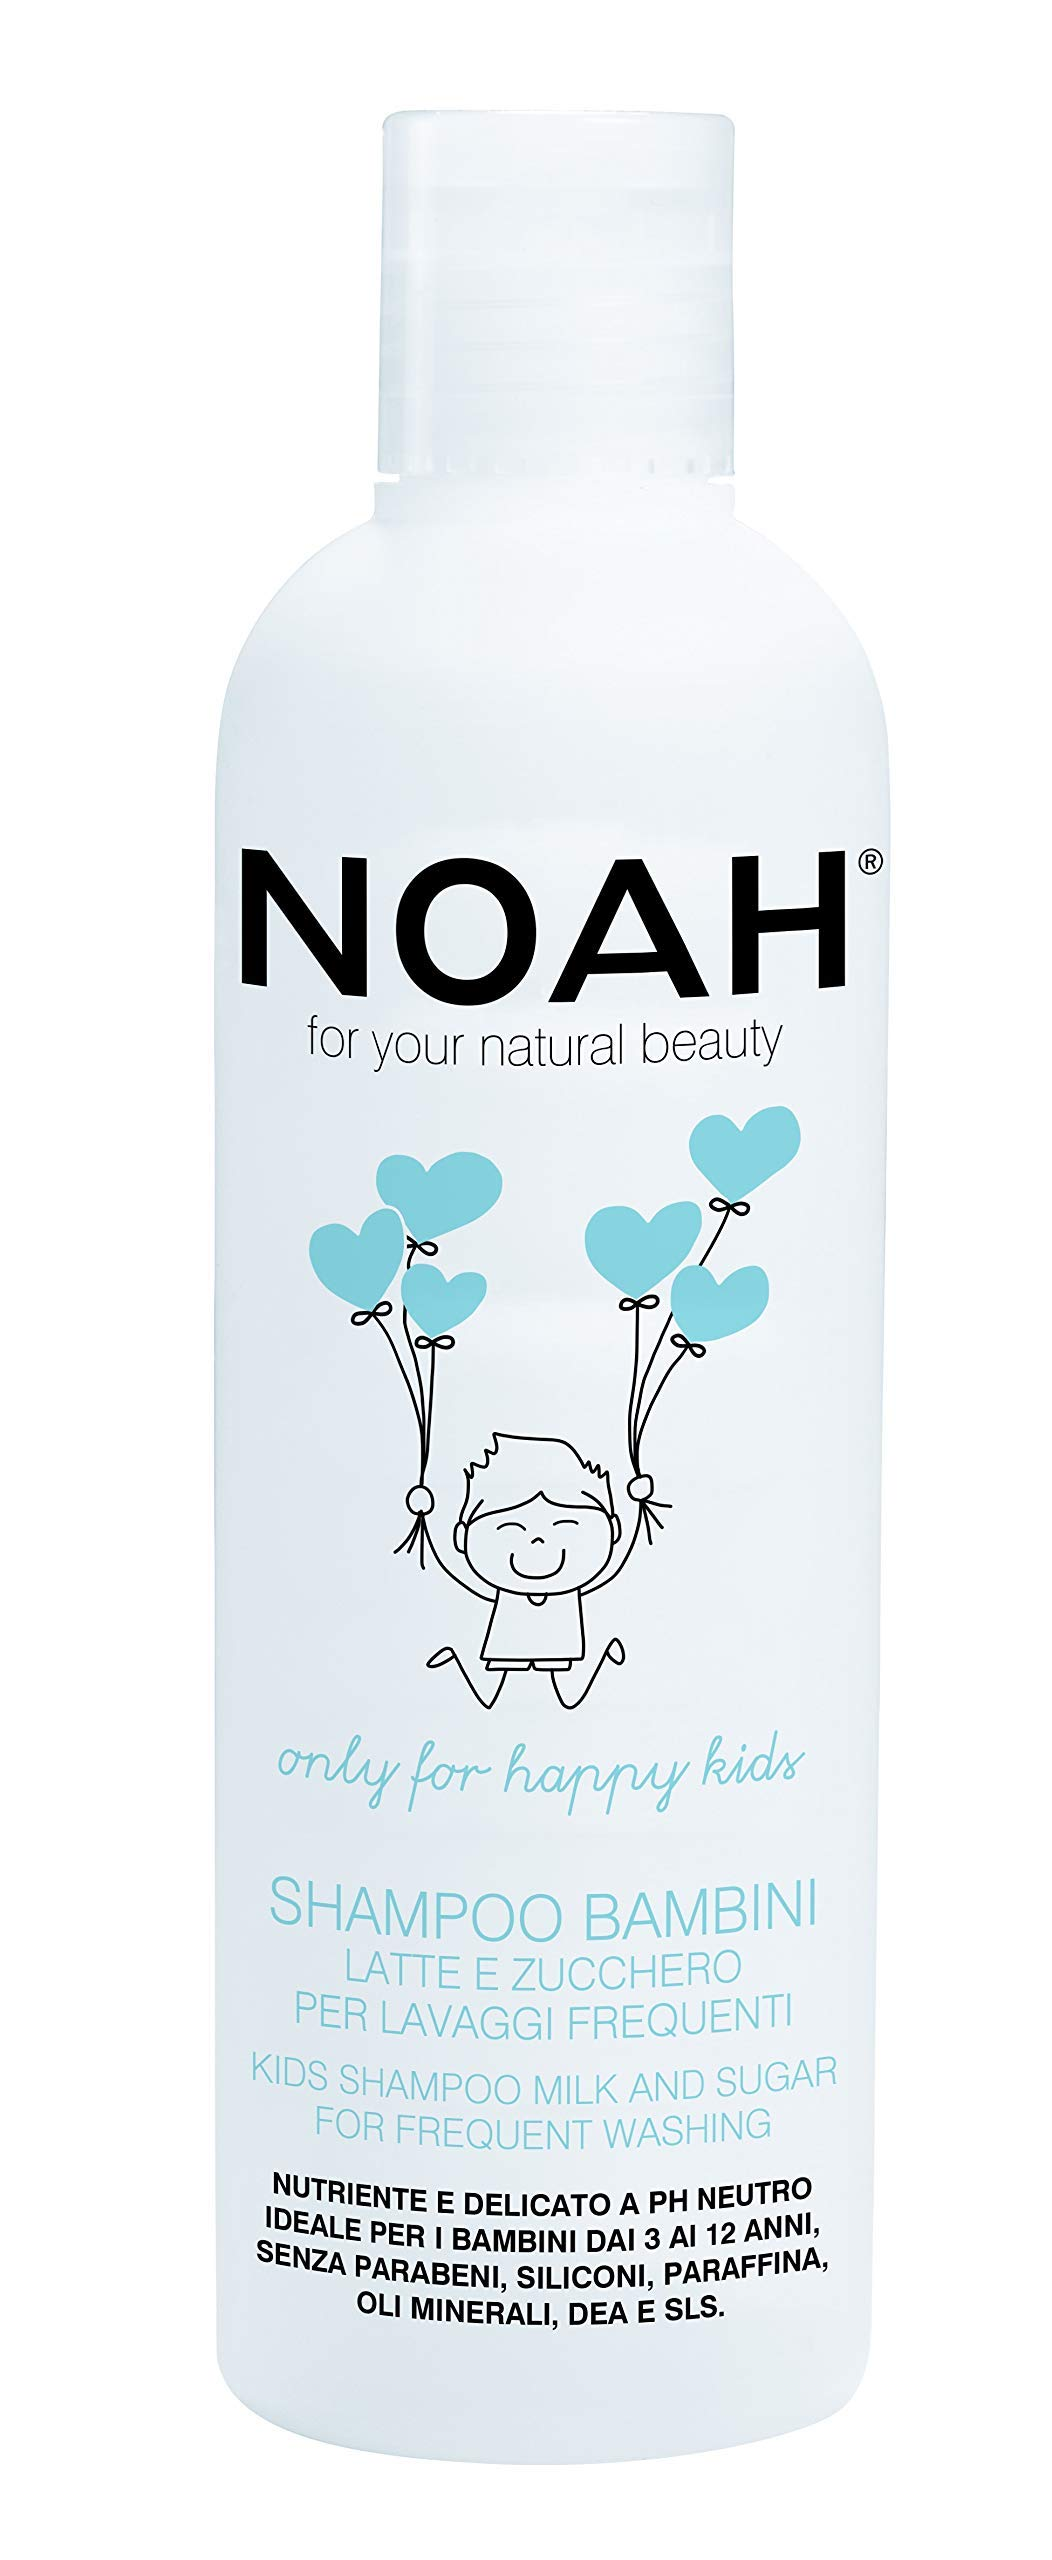 NOAH Kids Detangling Shampoo with Milk Protein & Sugar for Frequent Hair Wash - Organic, Sulfate, Eco Friendly, Non Toxic, Cruelty Free Shampoo - Sensitive, Hydrating, Gentle Shampoo, 8.5 Fl. Oz